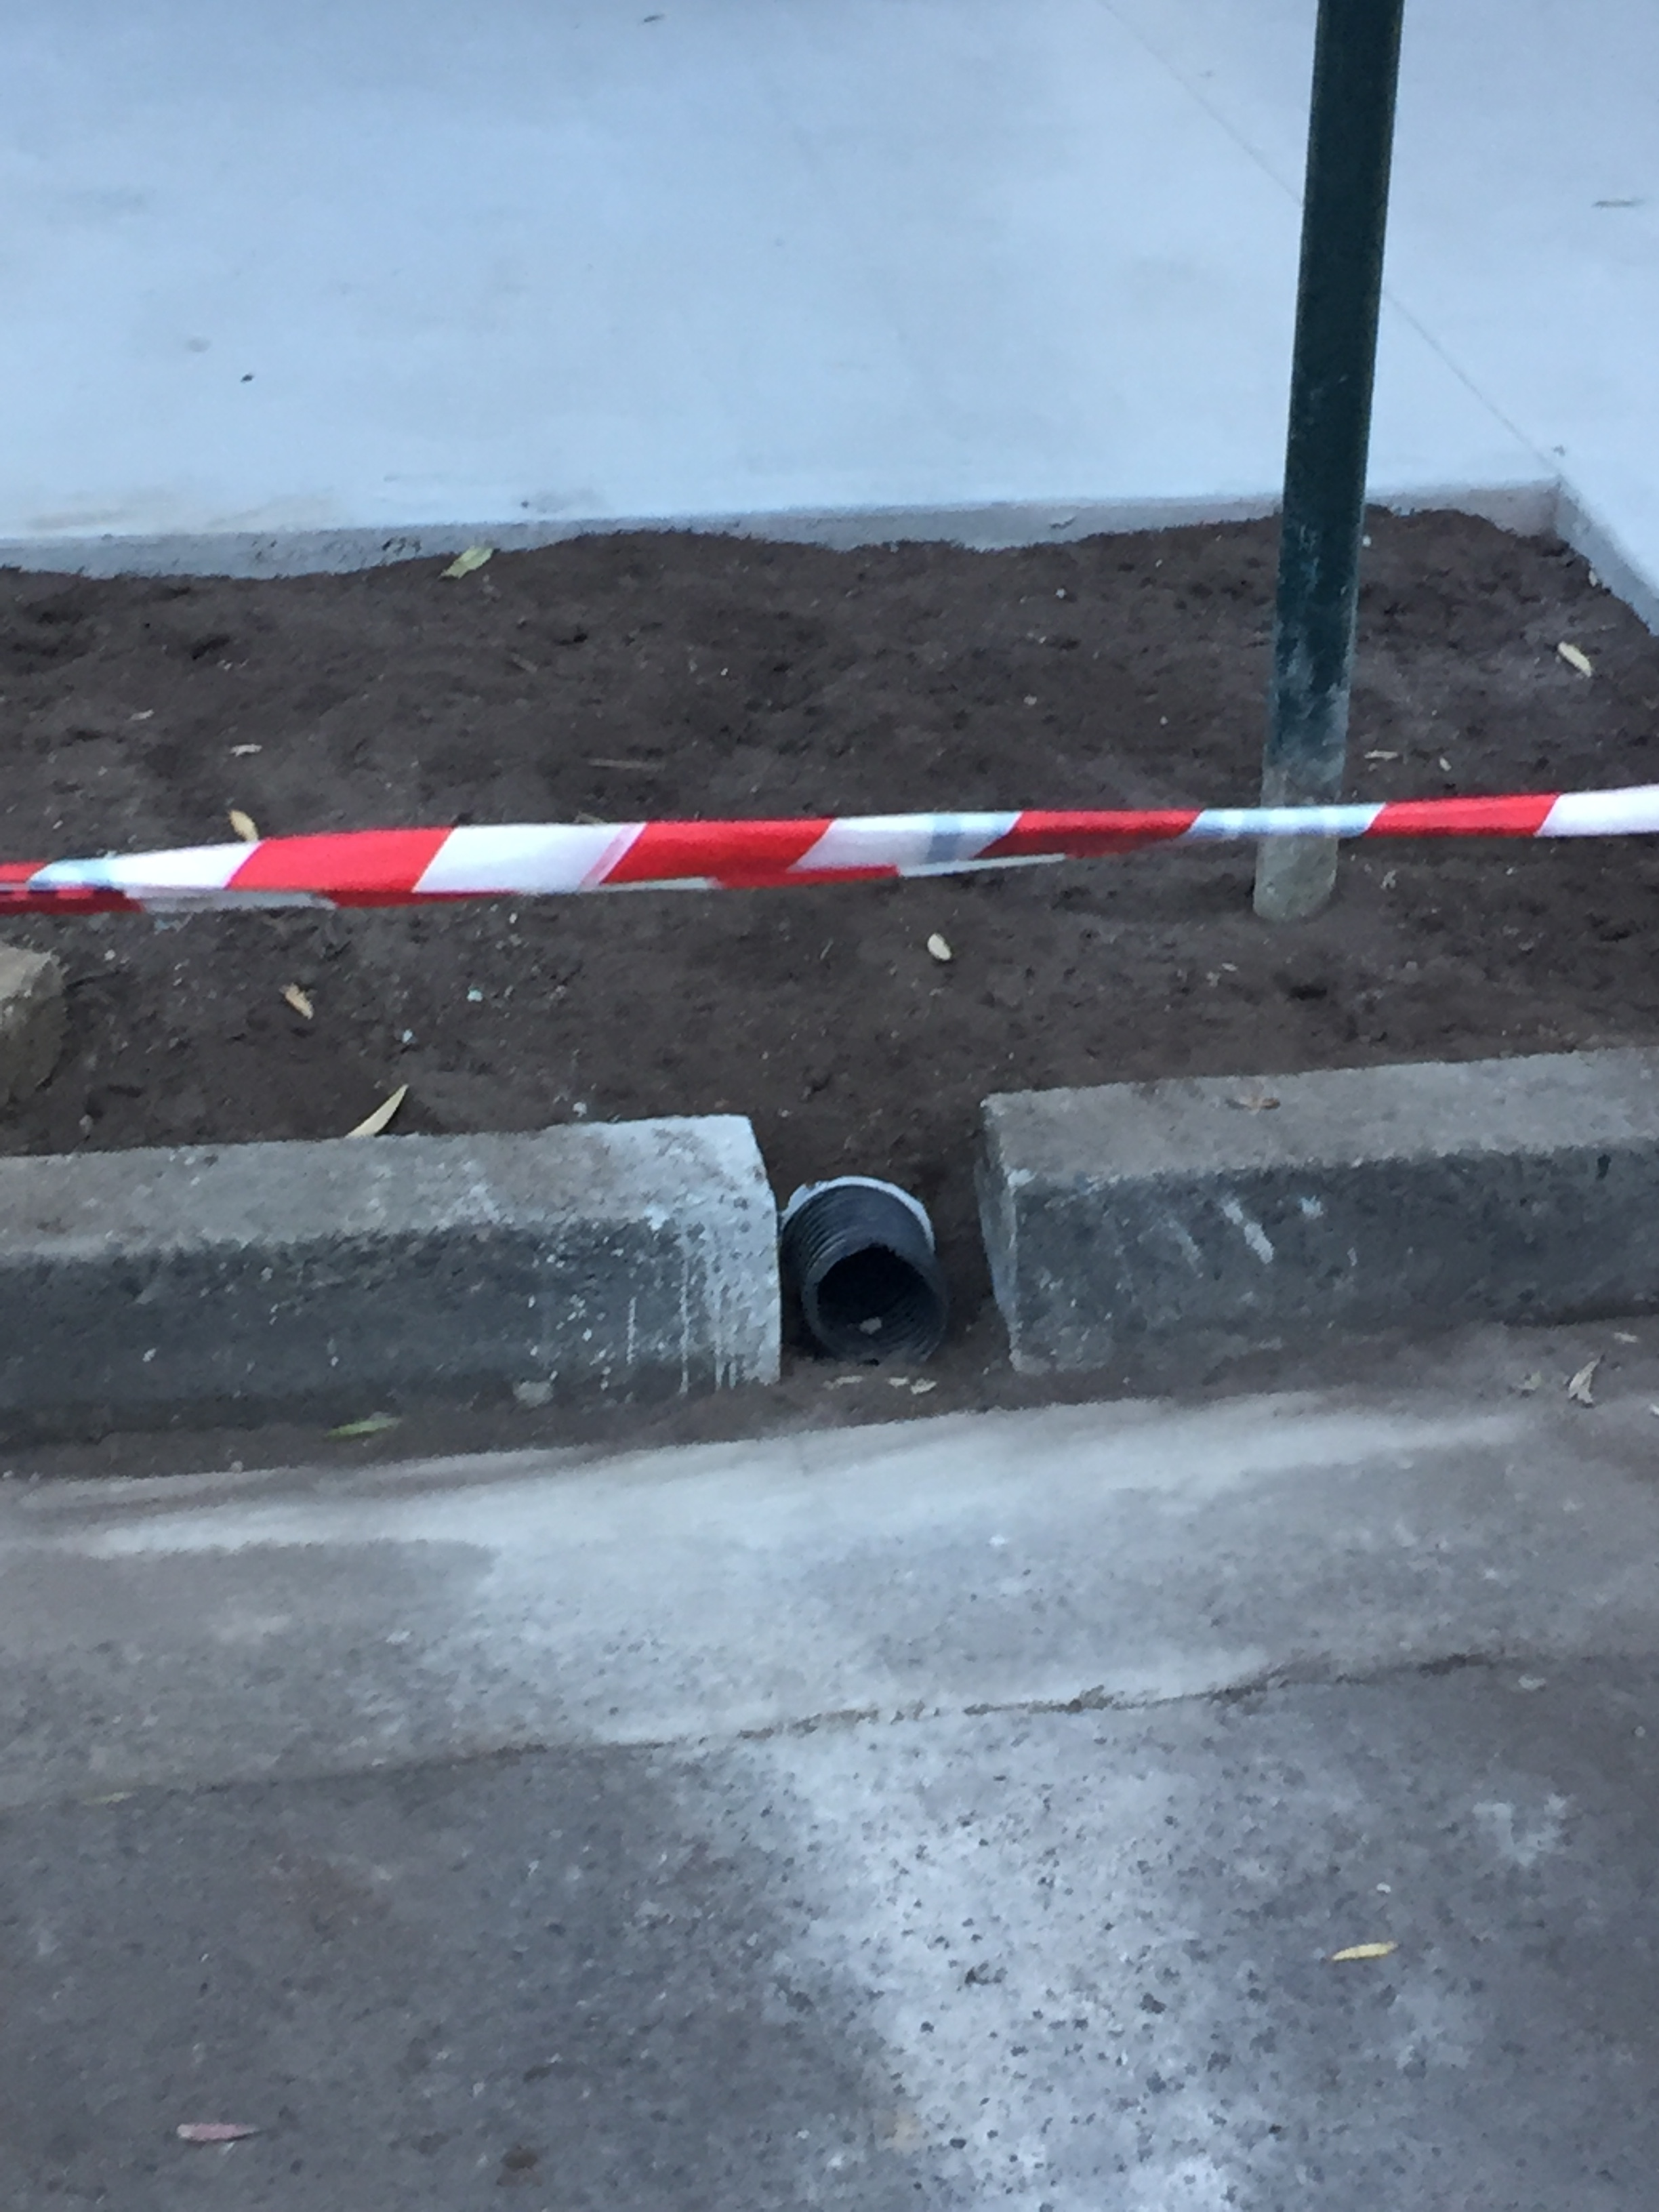 • Sydney City Council is installing leaky drains this week in Pine Street, Chippendale - see the leaky pipe in the photo? Later today concrete will put placed over the top of the pipe to keep the garden soil there.